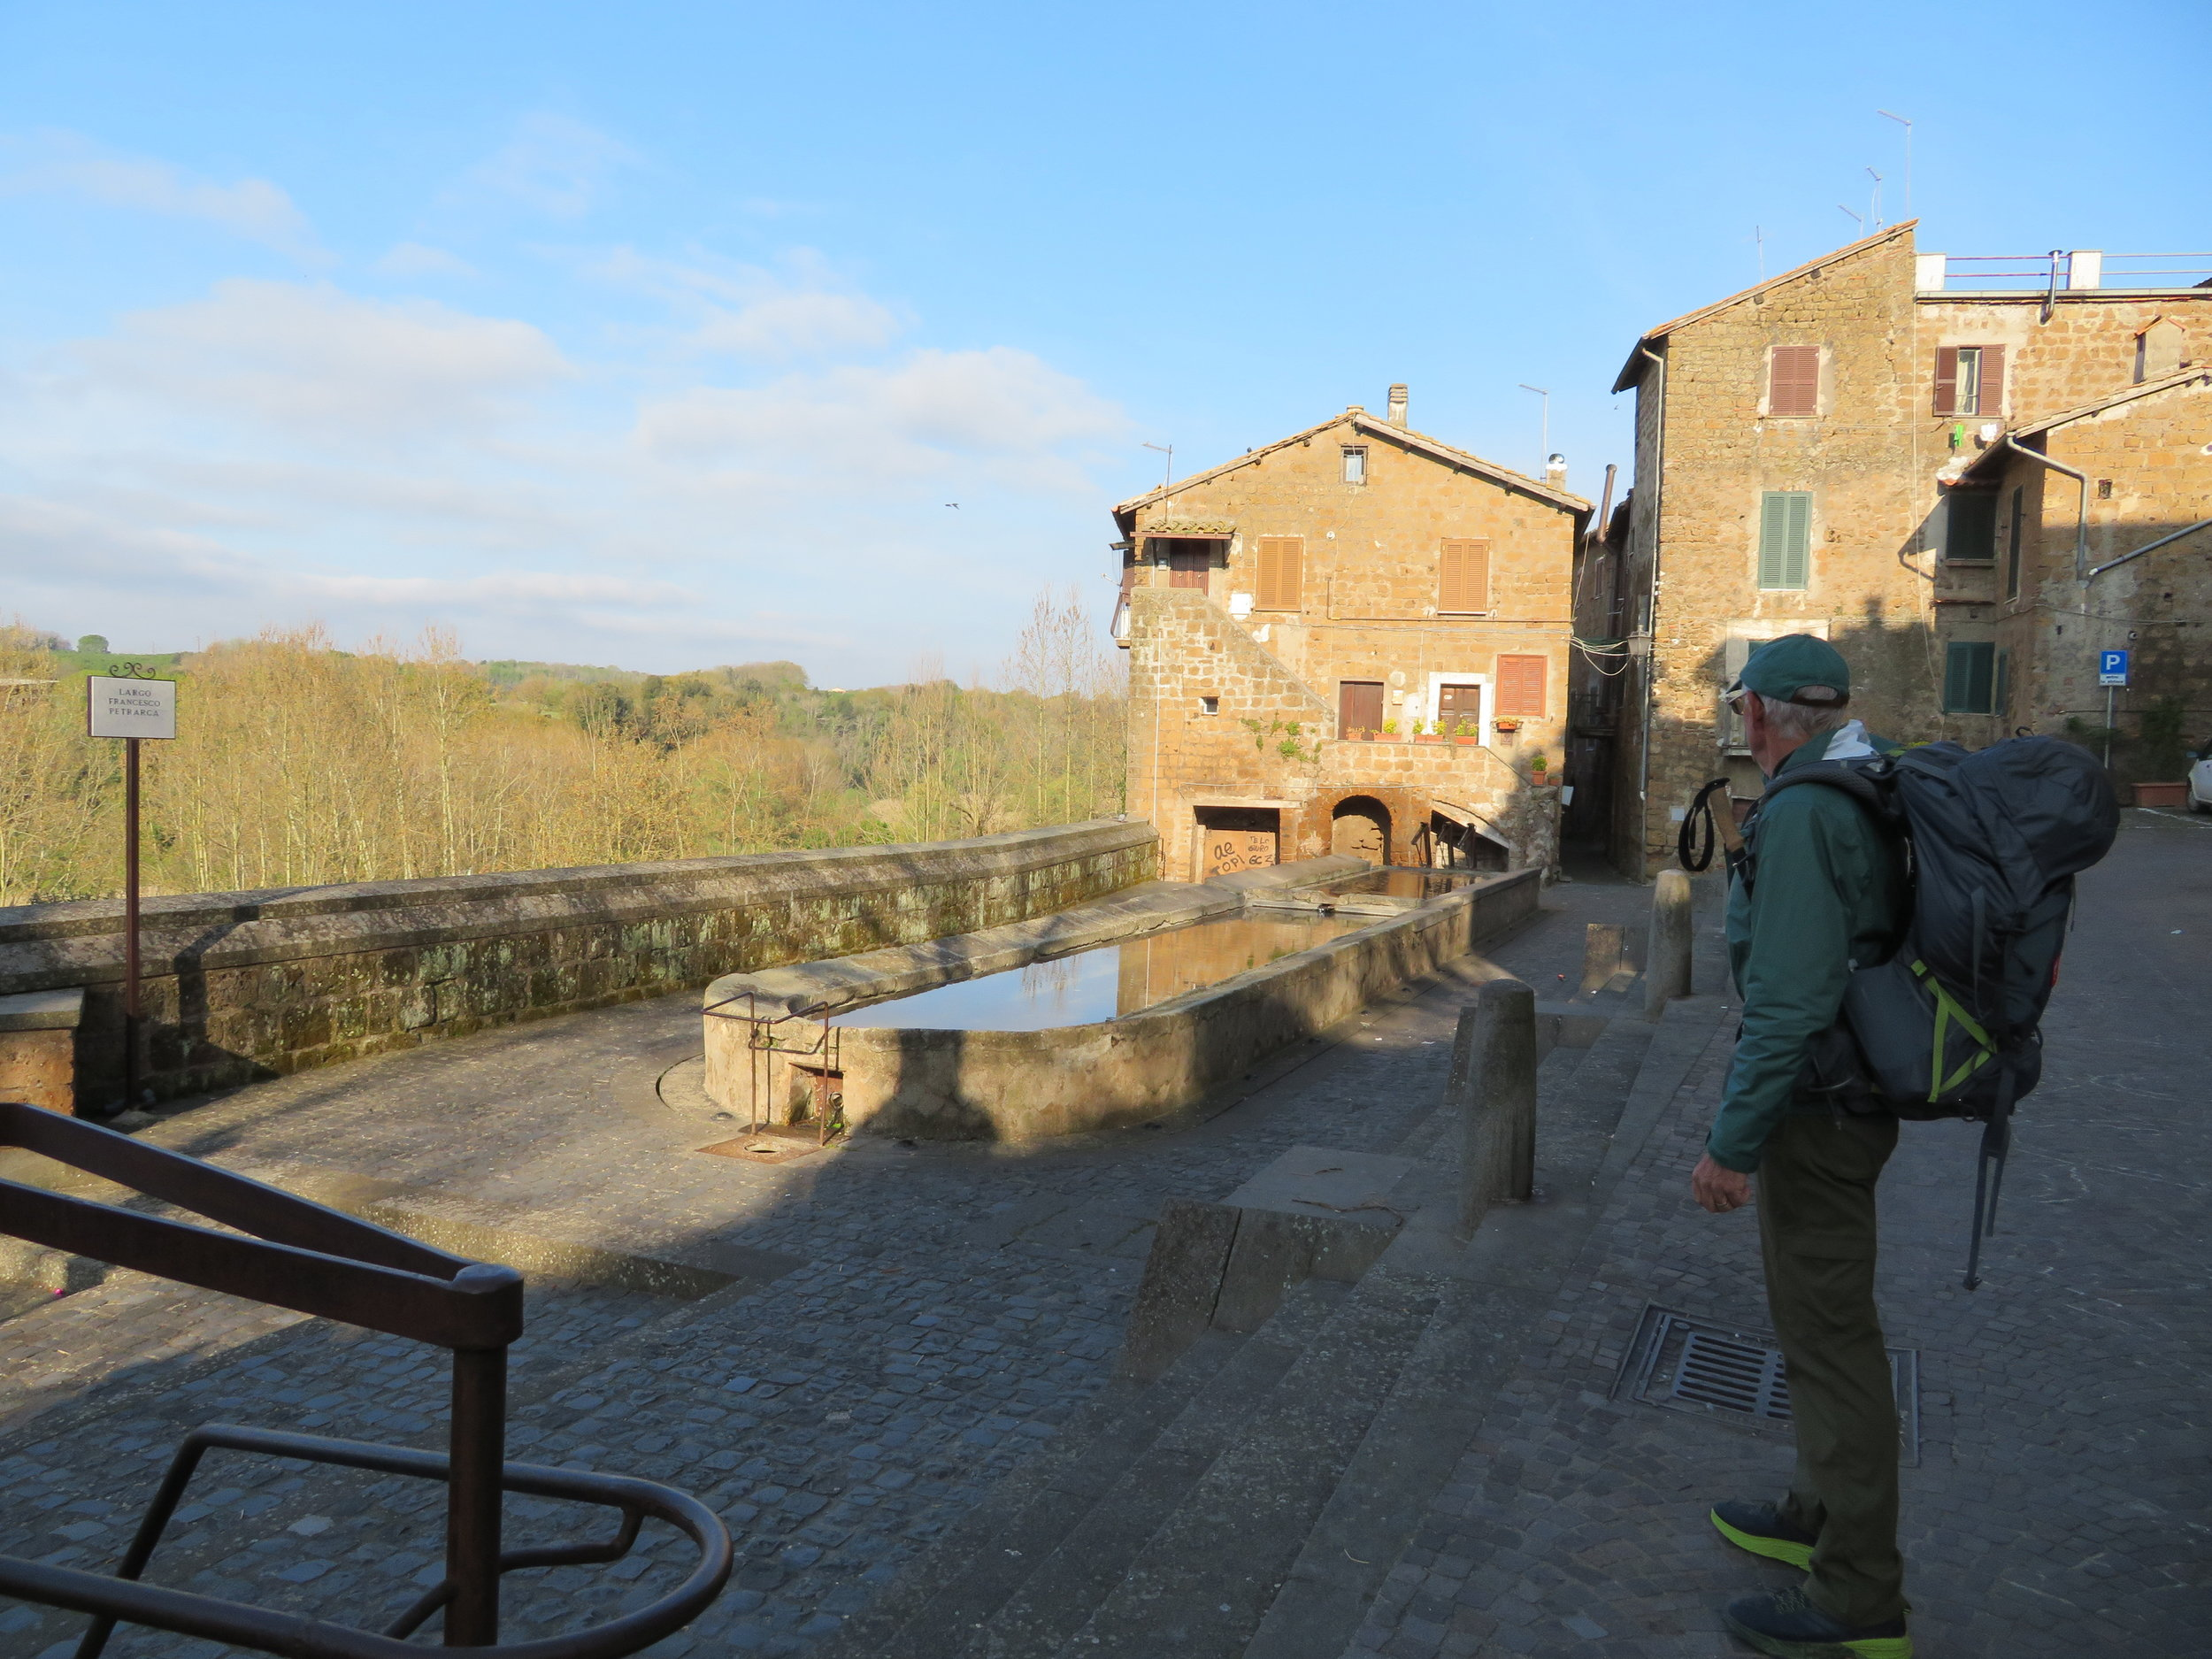 Heading from Sutri's old city back down to the Via Francigena